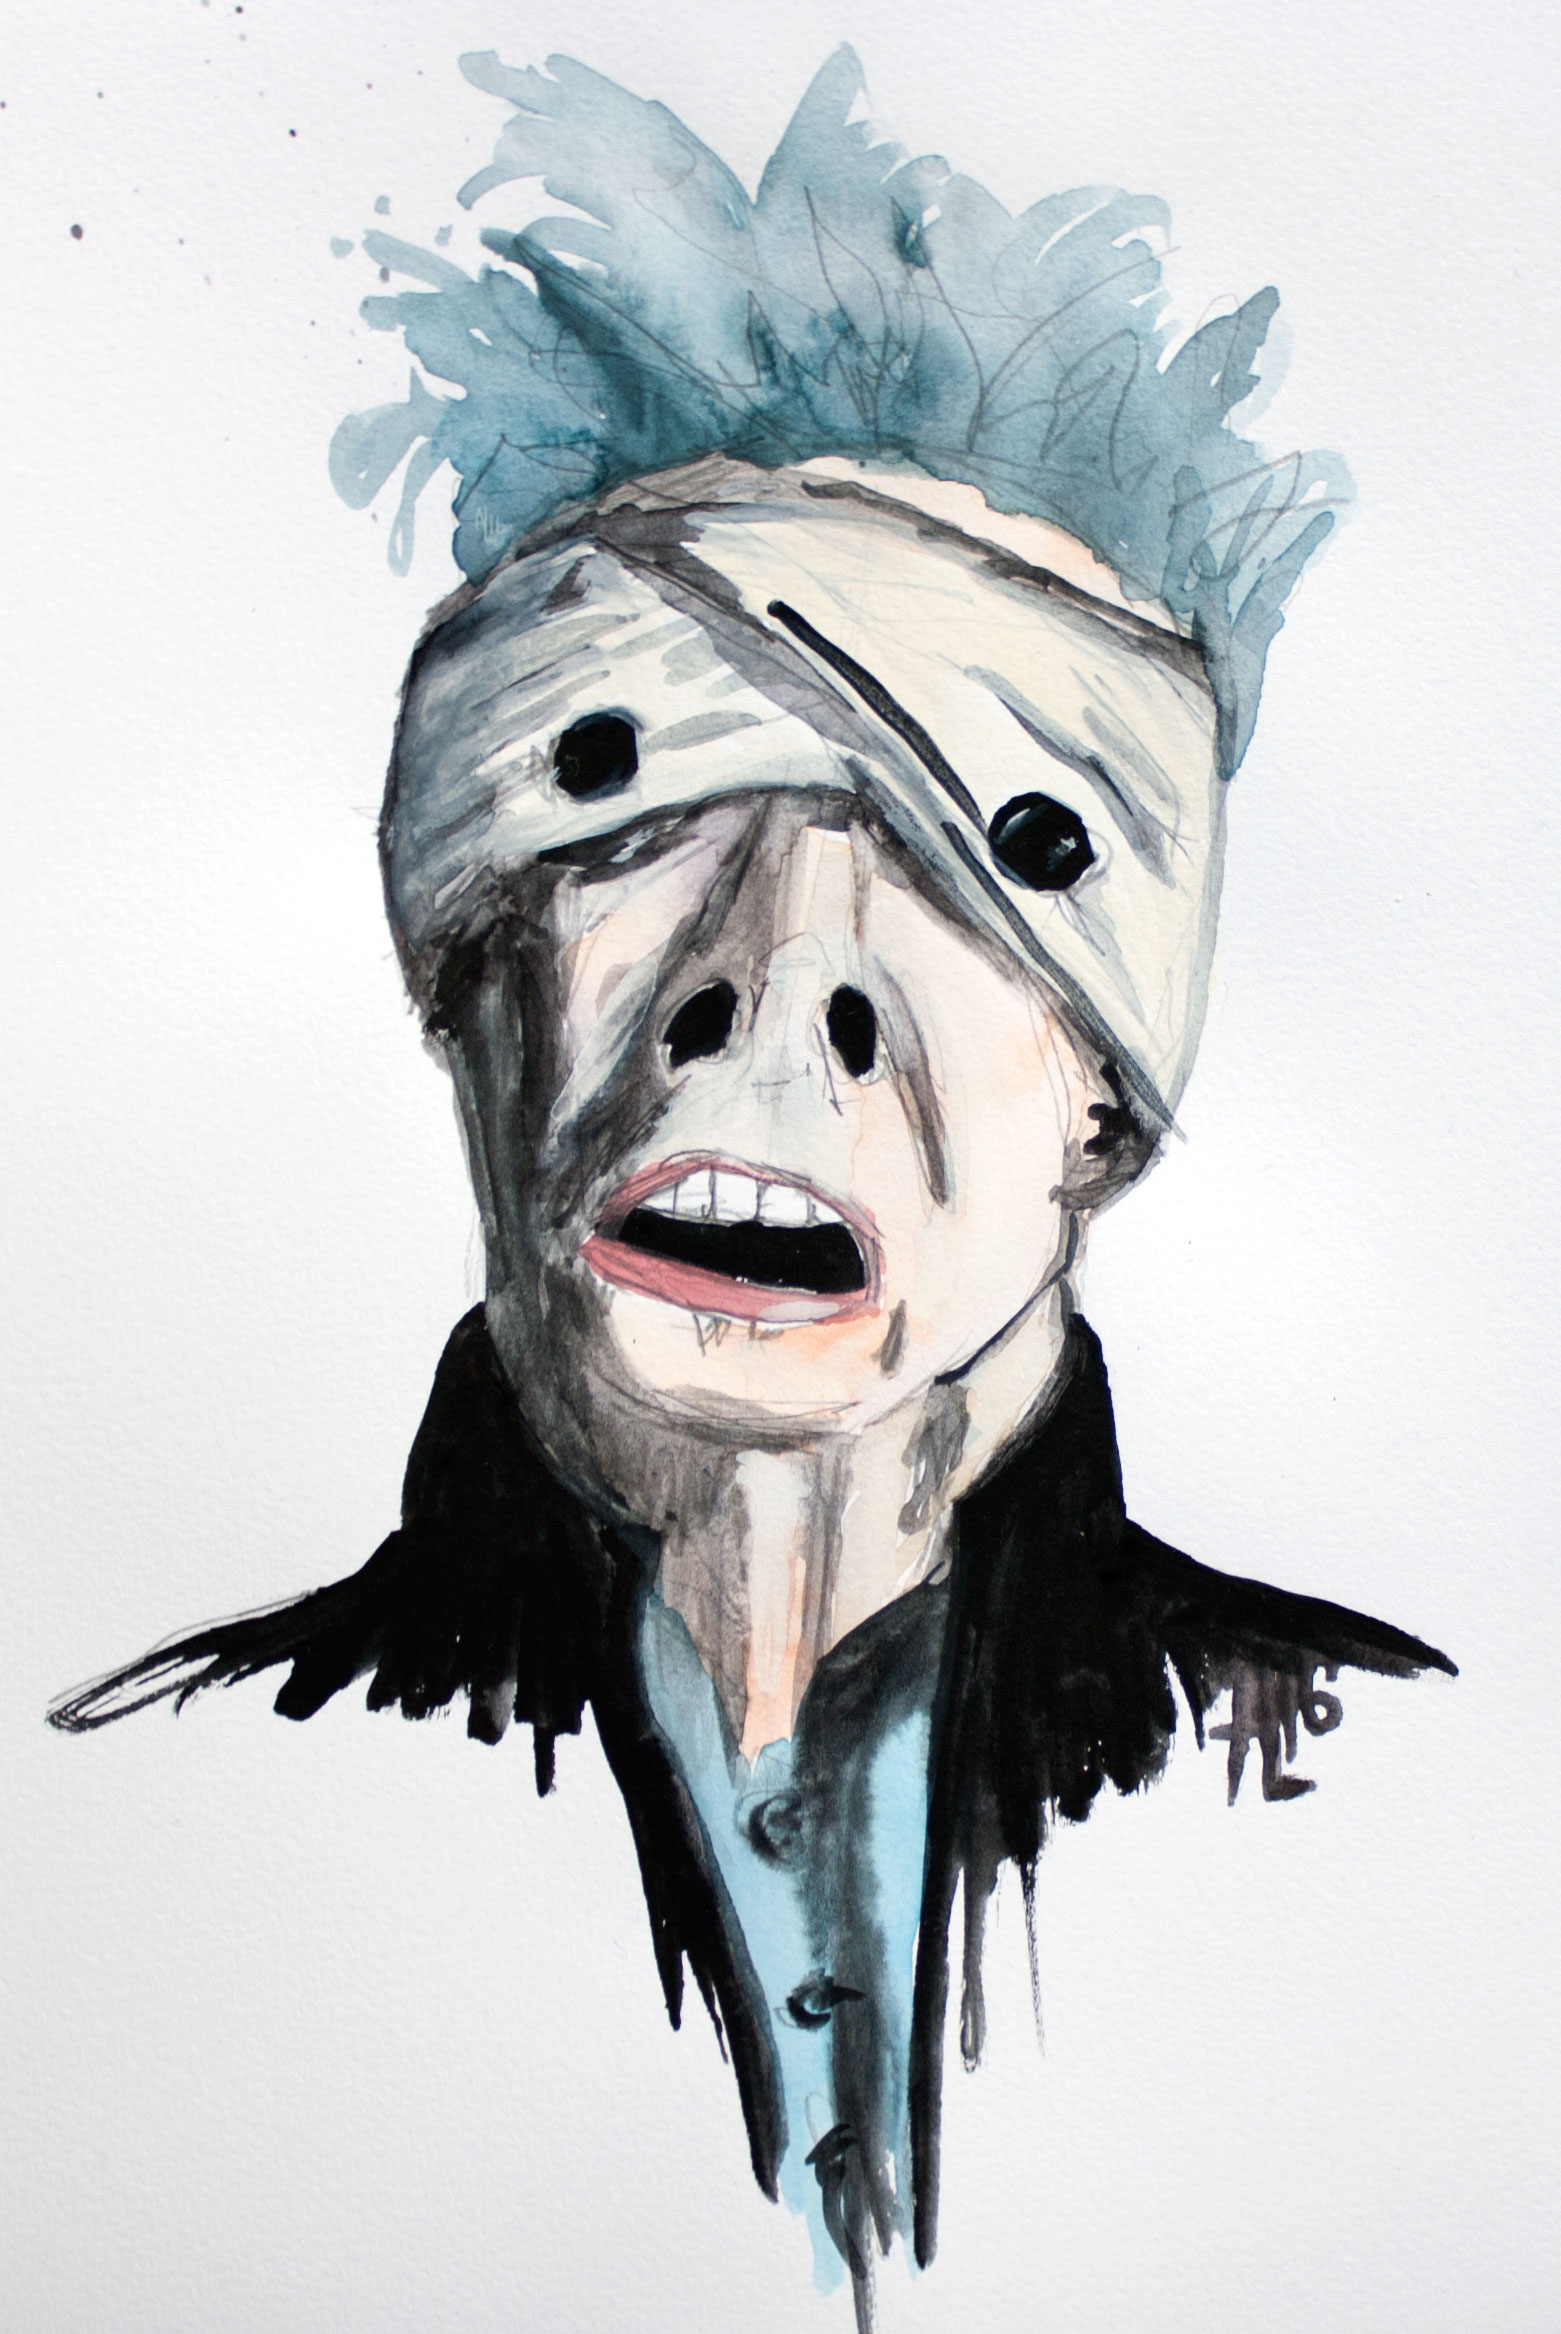 A Reading of David Bowie's Blackstar Music Video: In Memoriam | onecriticalbitch.com | Original illustration by Alex Landers